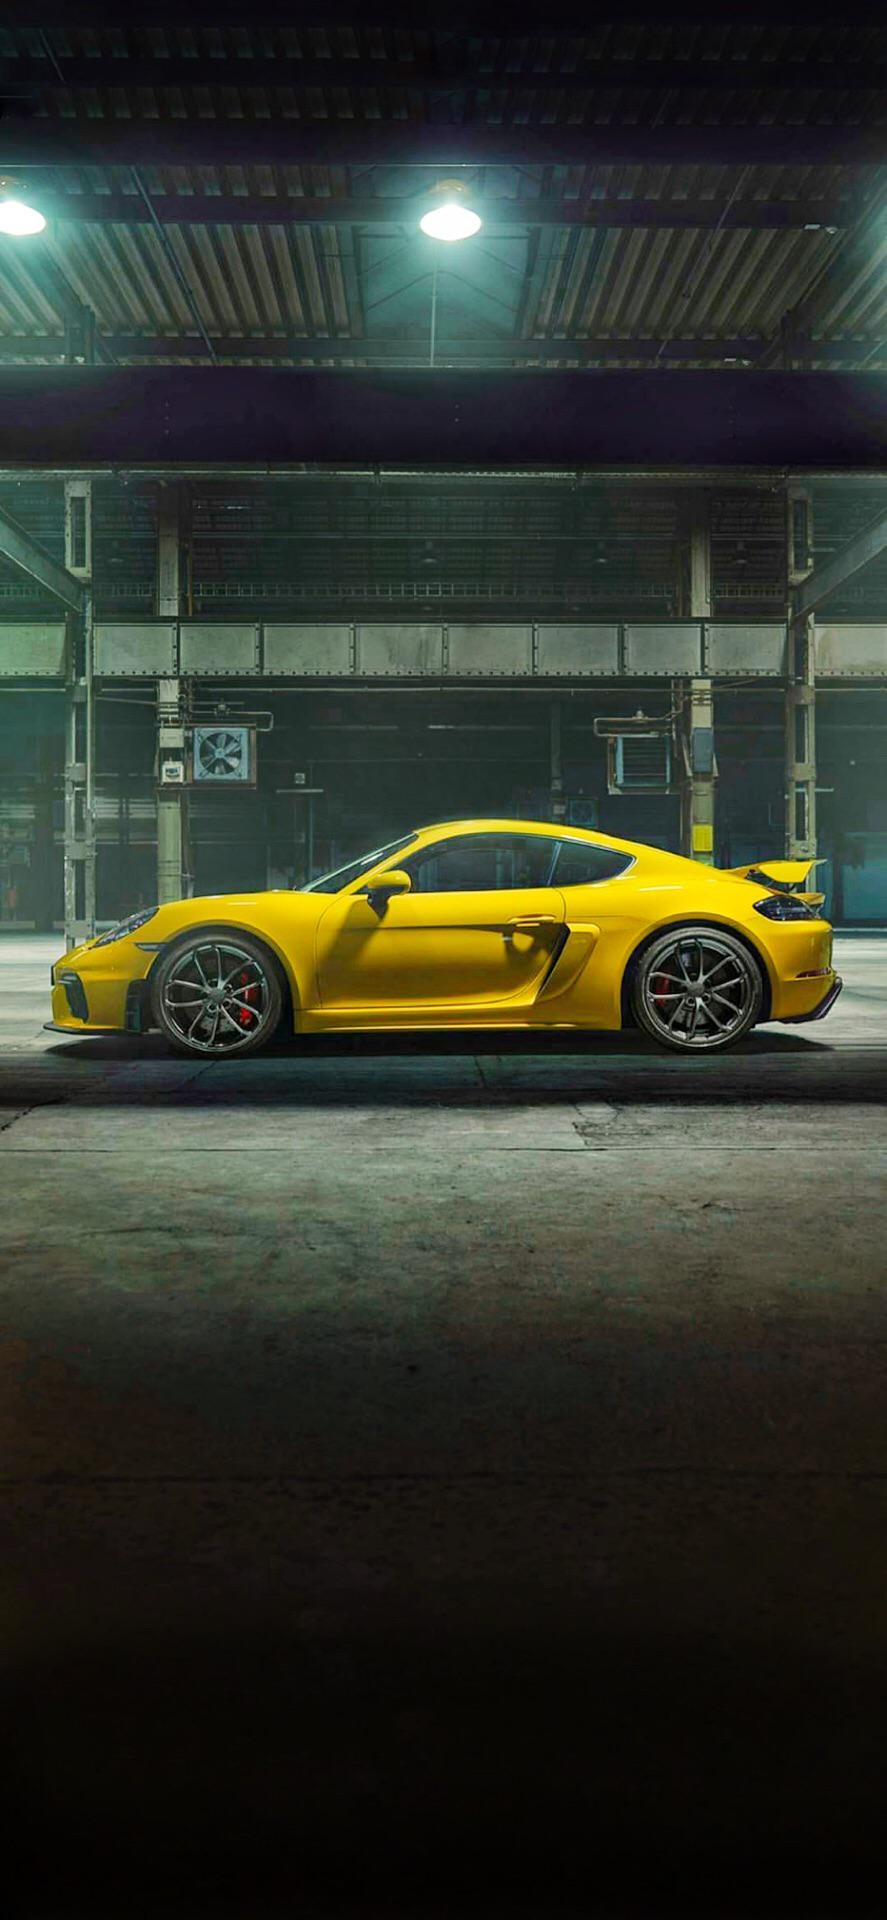 Cayman Gt4 Wallpaper Posted By Christopher Peltier